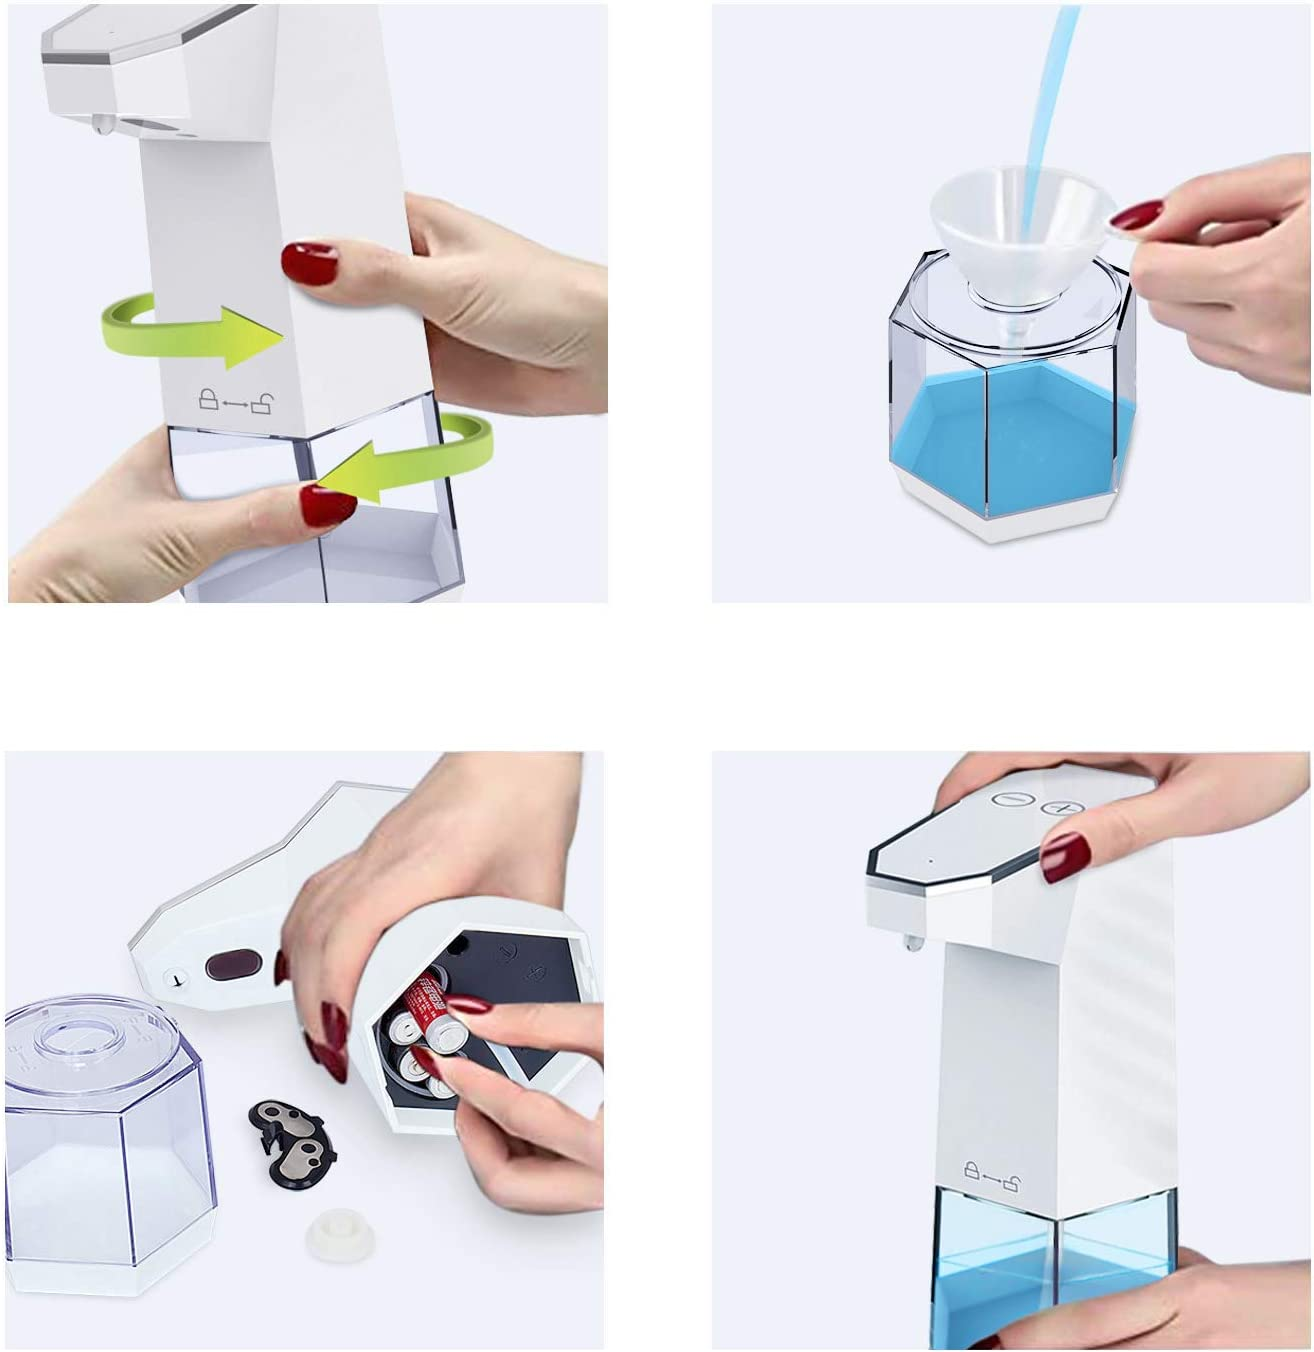 Ciaoed Automatic Foam Soap Dispenser,Touchless Infrared Motion Sensor Hands-Free Auto Anti-Leakage Waterproof Adjustable Soap Dispenser 360 ML